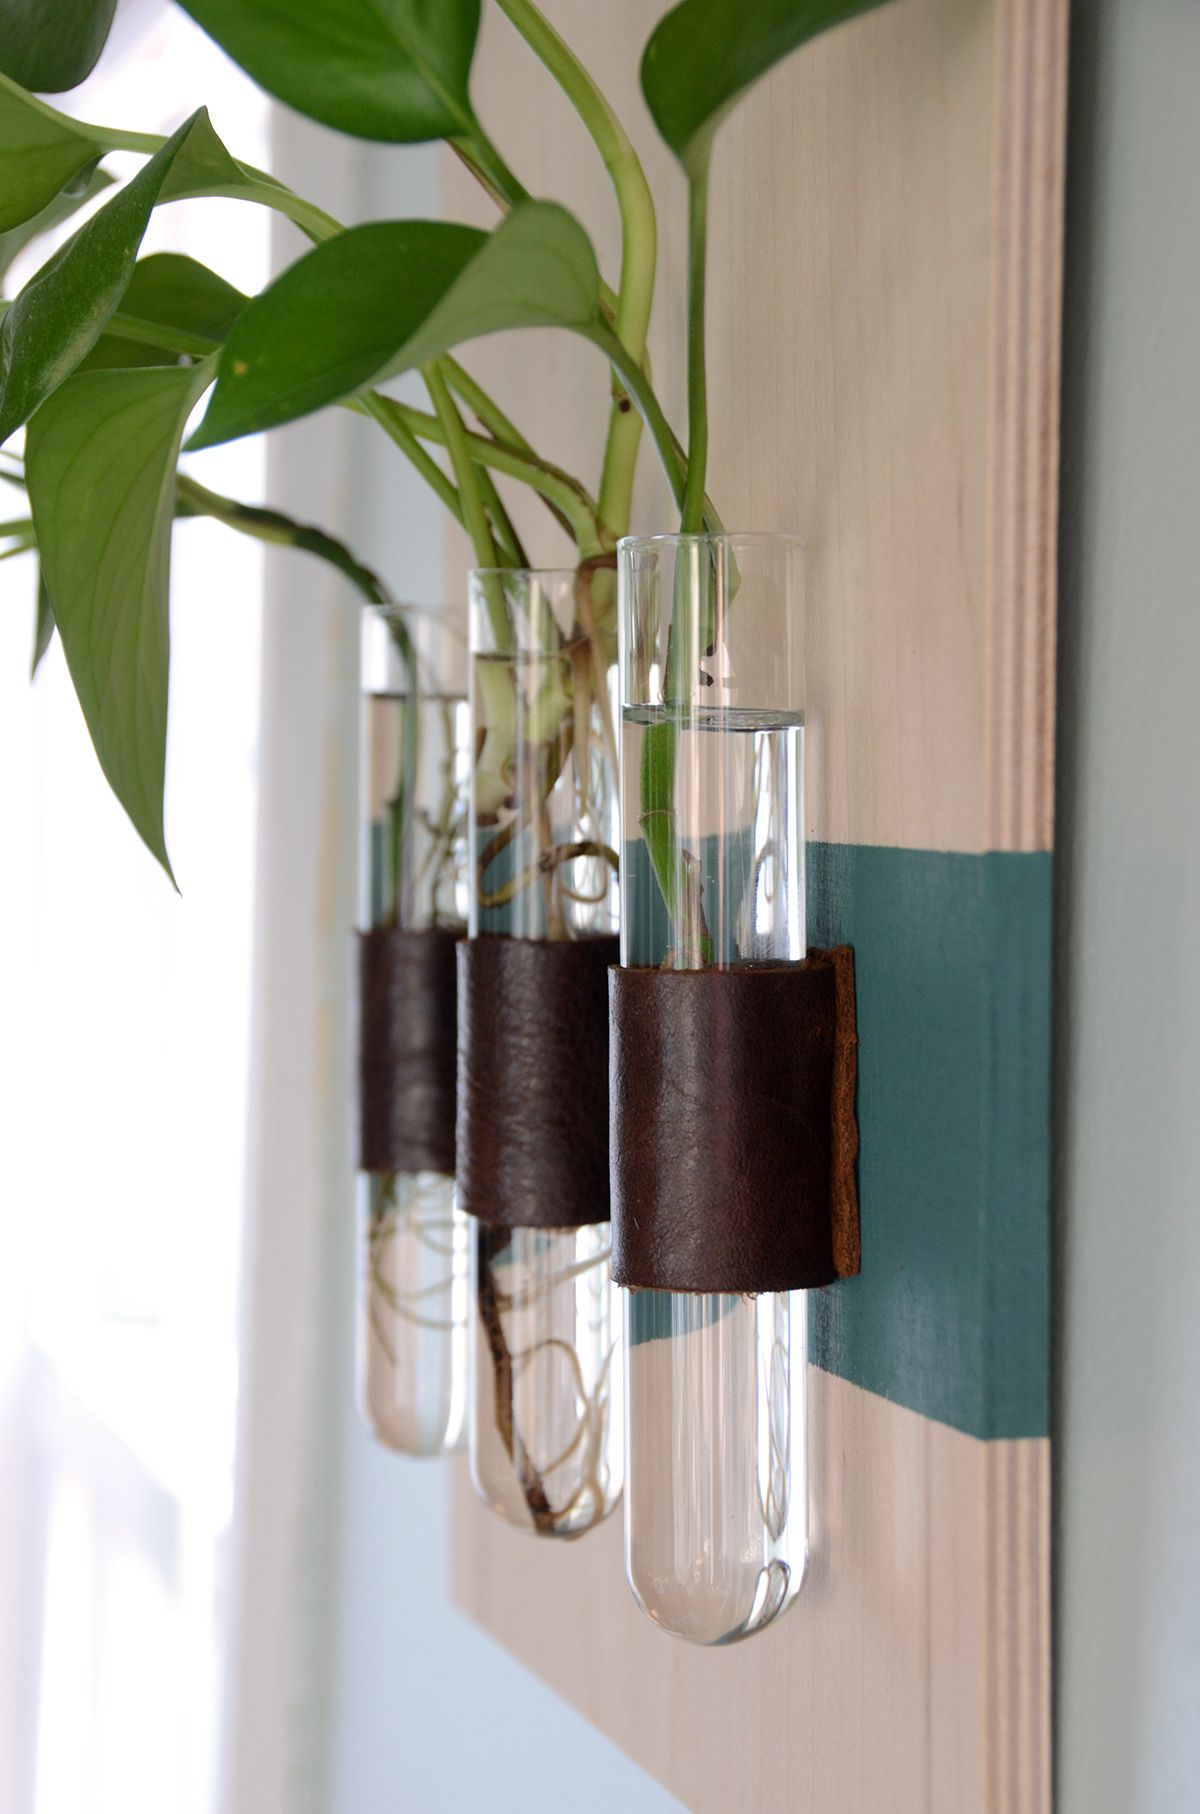 Easy Diy Wall Mounted Test Tube Vases Home And Decor Projects Vase Crafts Test Tube Crafts